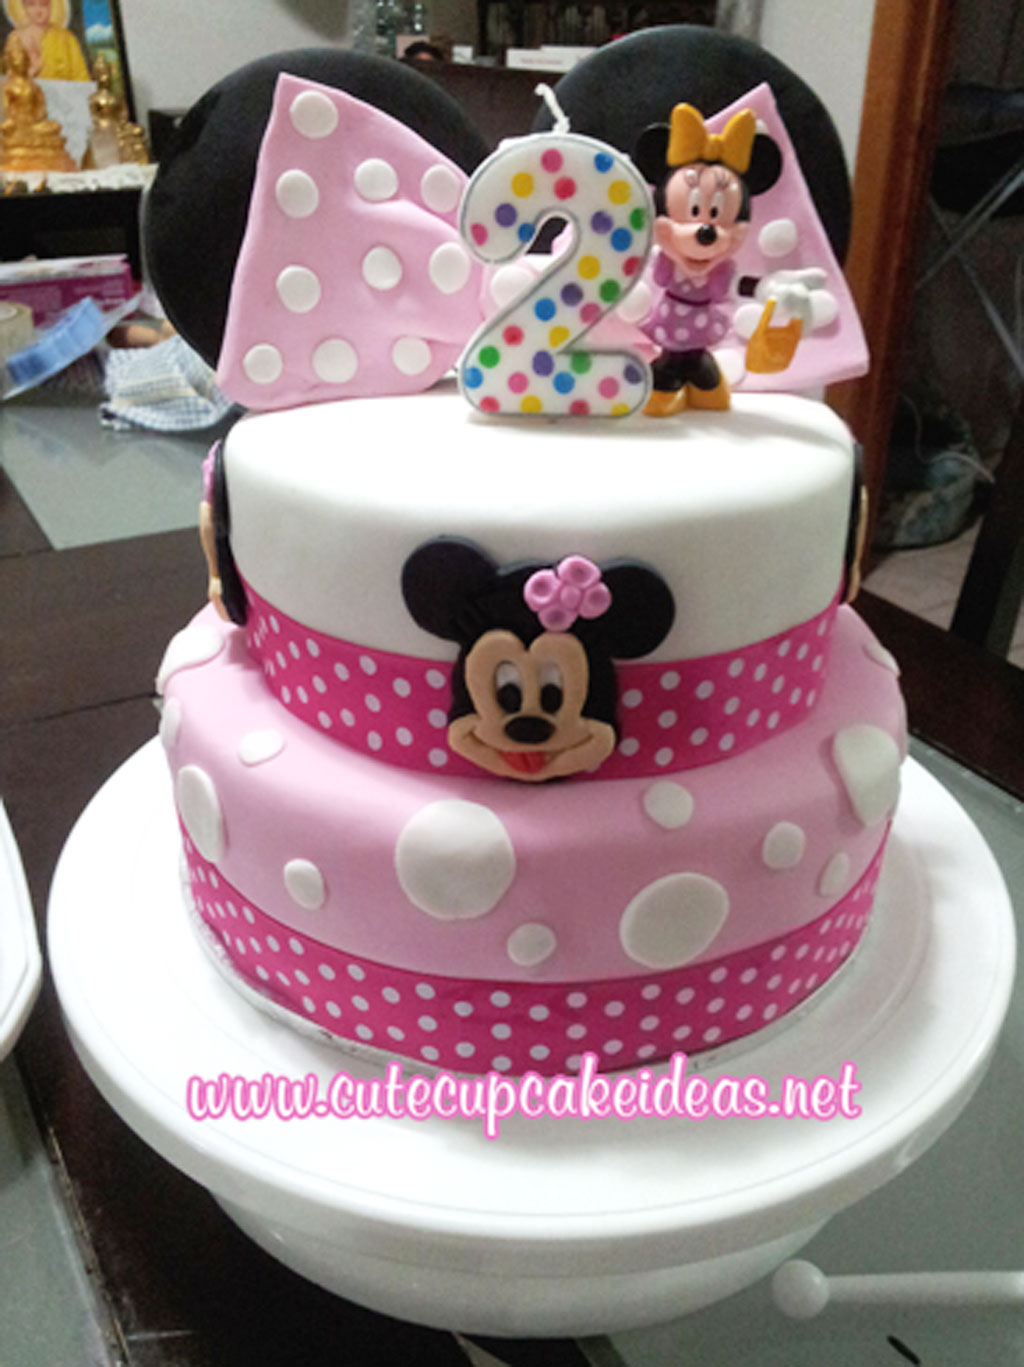 Birthday Cake Ideas With Cupcakes : Minnie Mouse Birthday Cupcake Ideas Birthday Cake - Cake ...